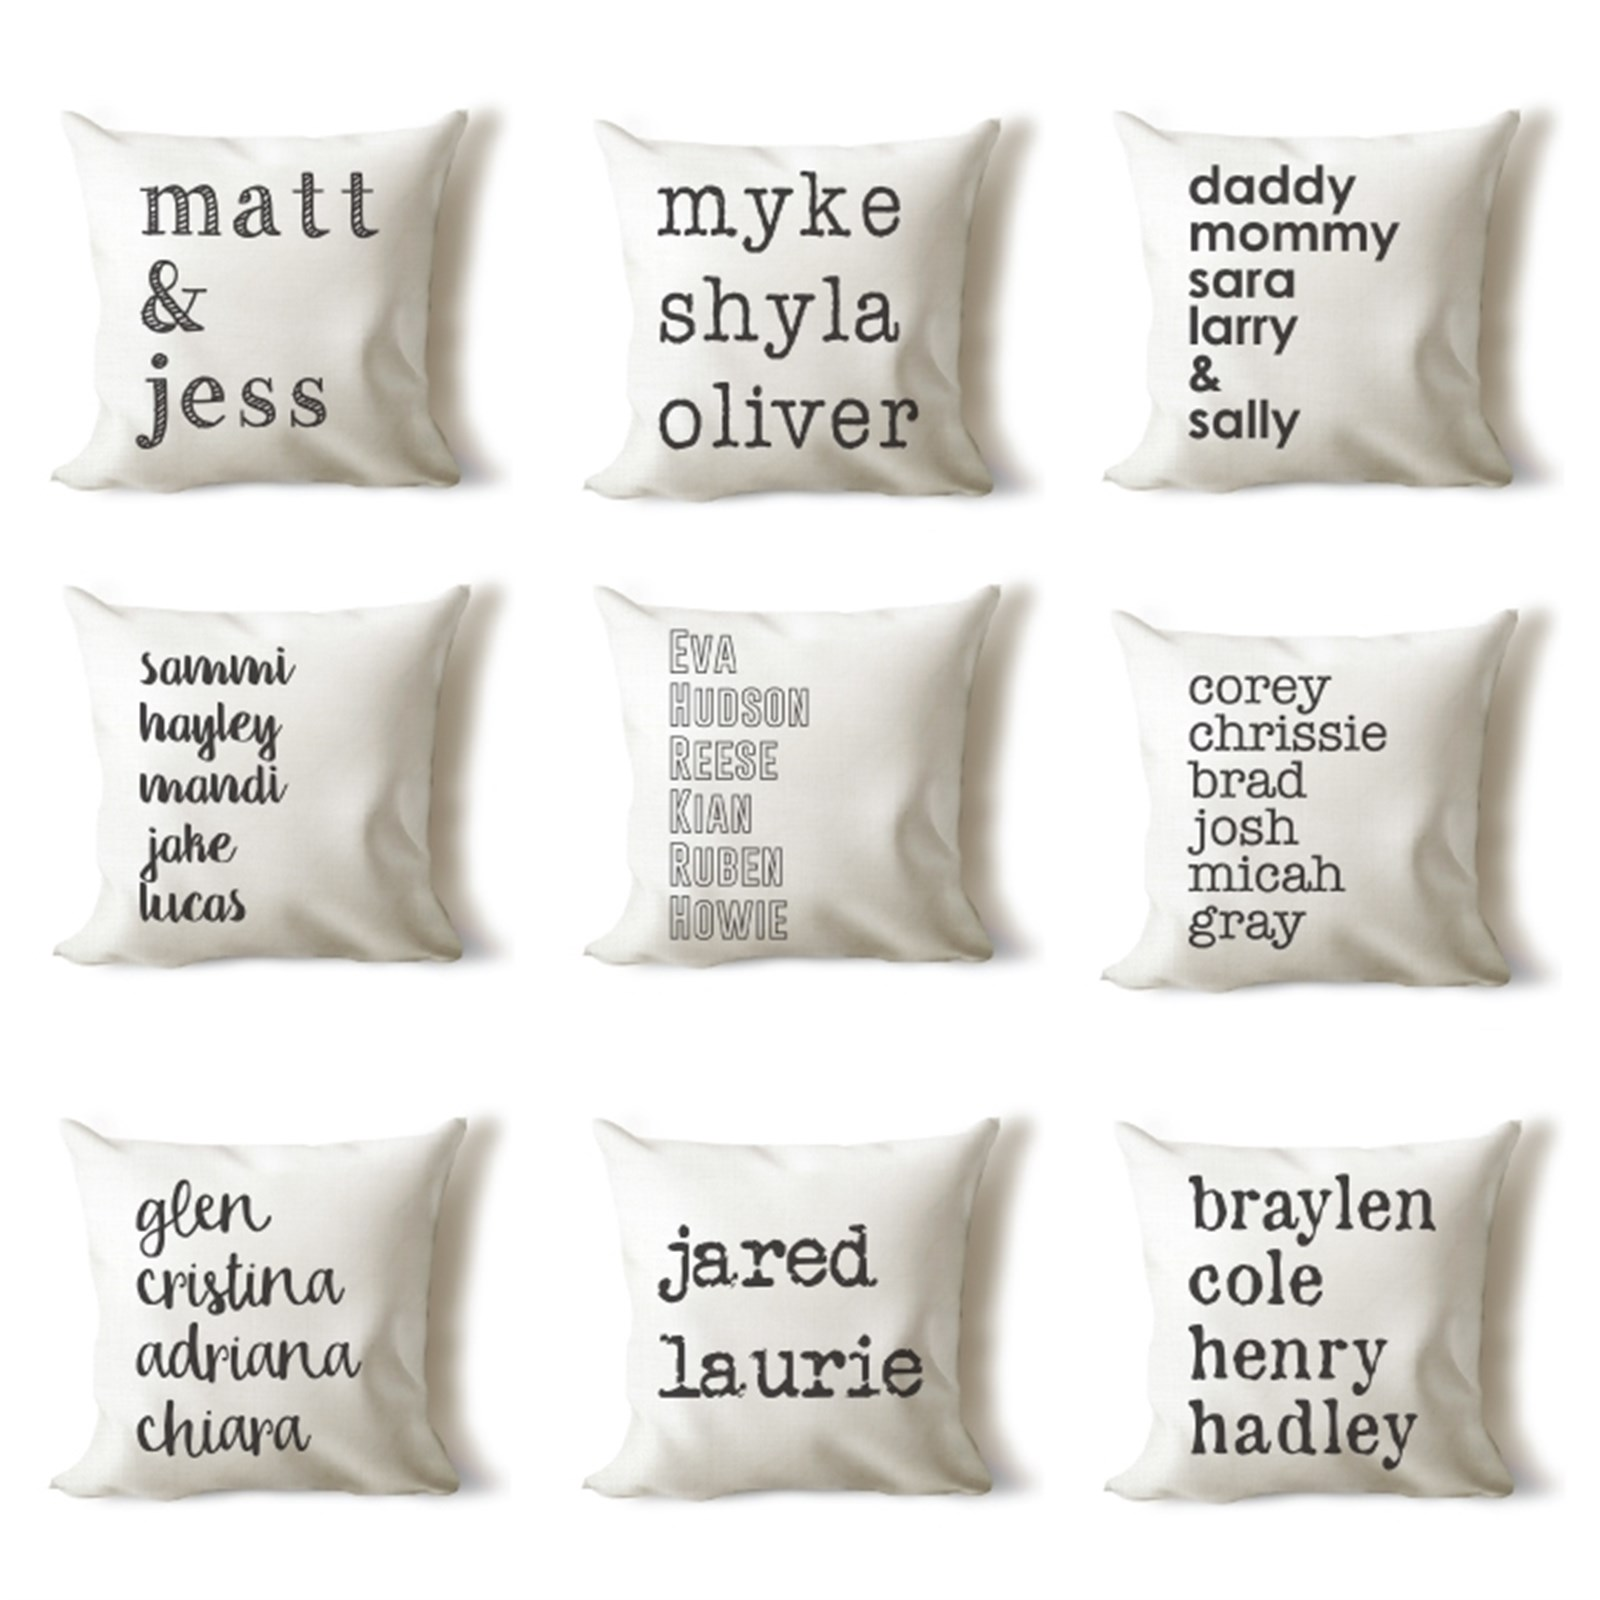 Personalized Name Pillow Covers Now $9.99 Shipped